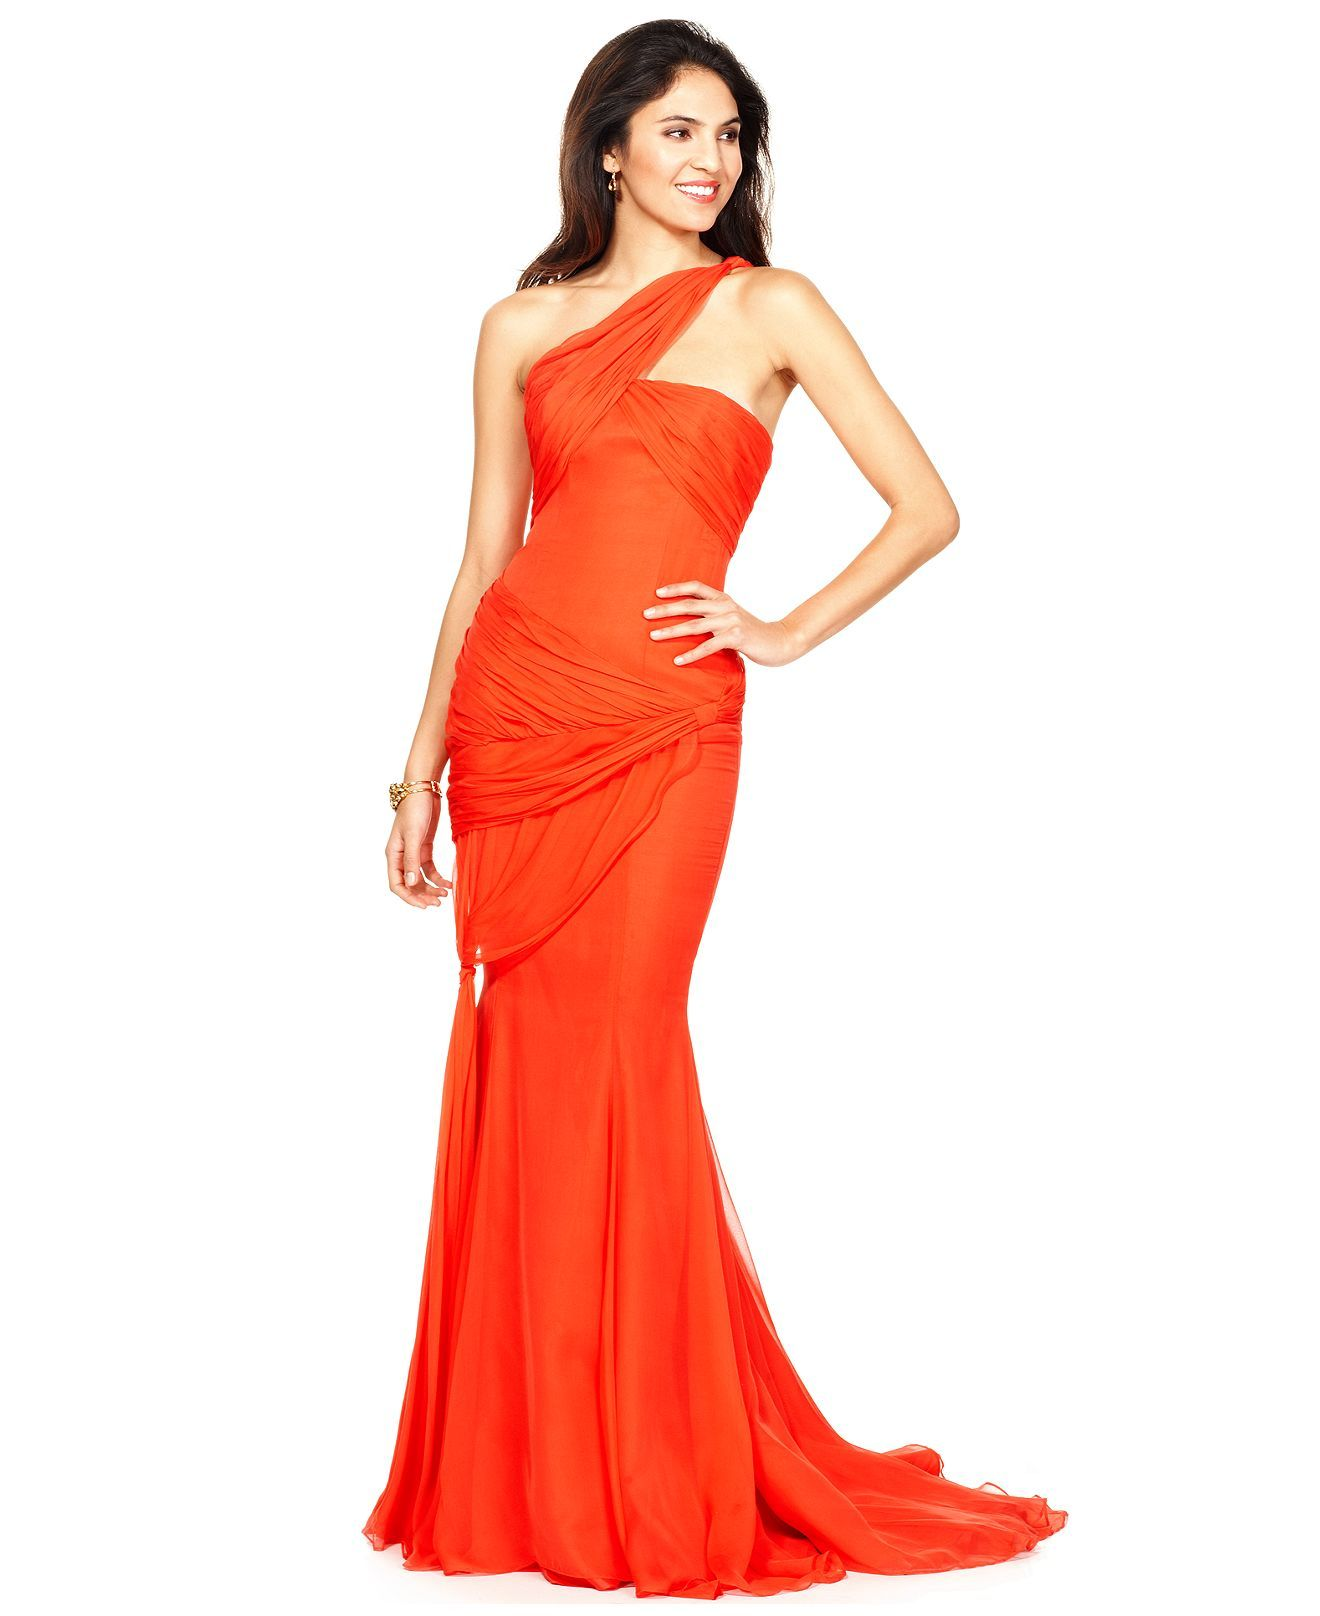 love the color...bright orange evening gown | Shades of Oranges ...